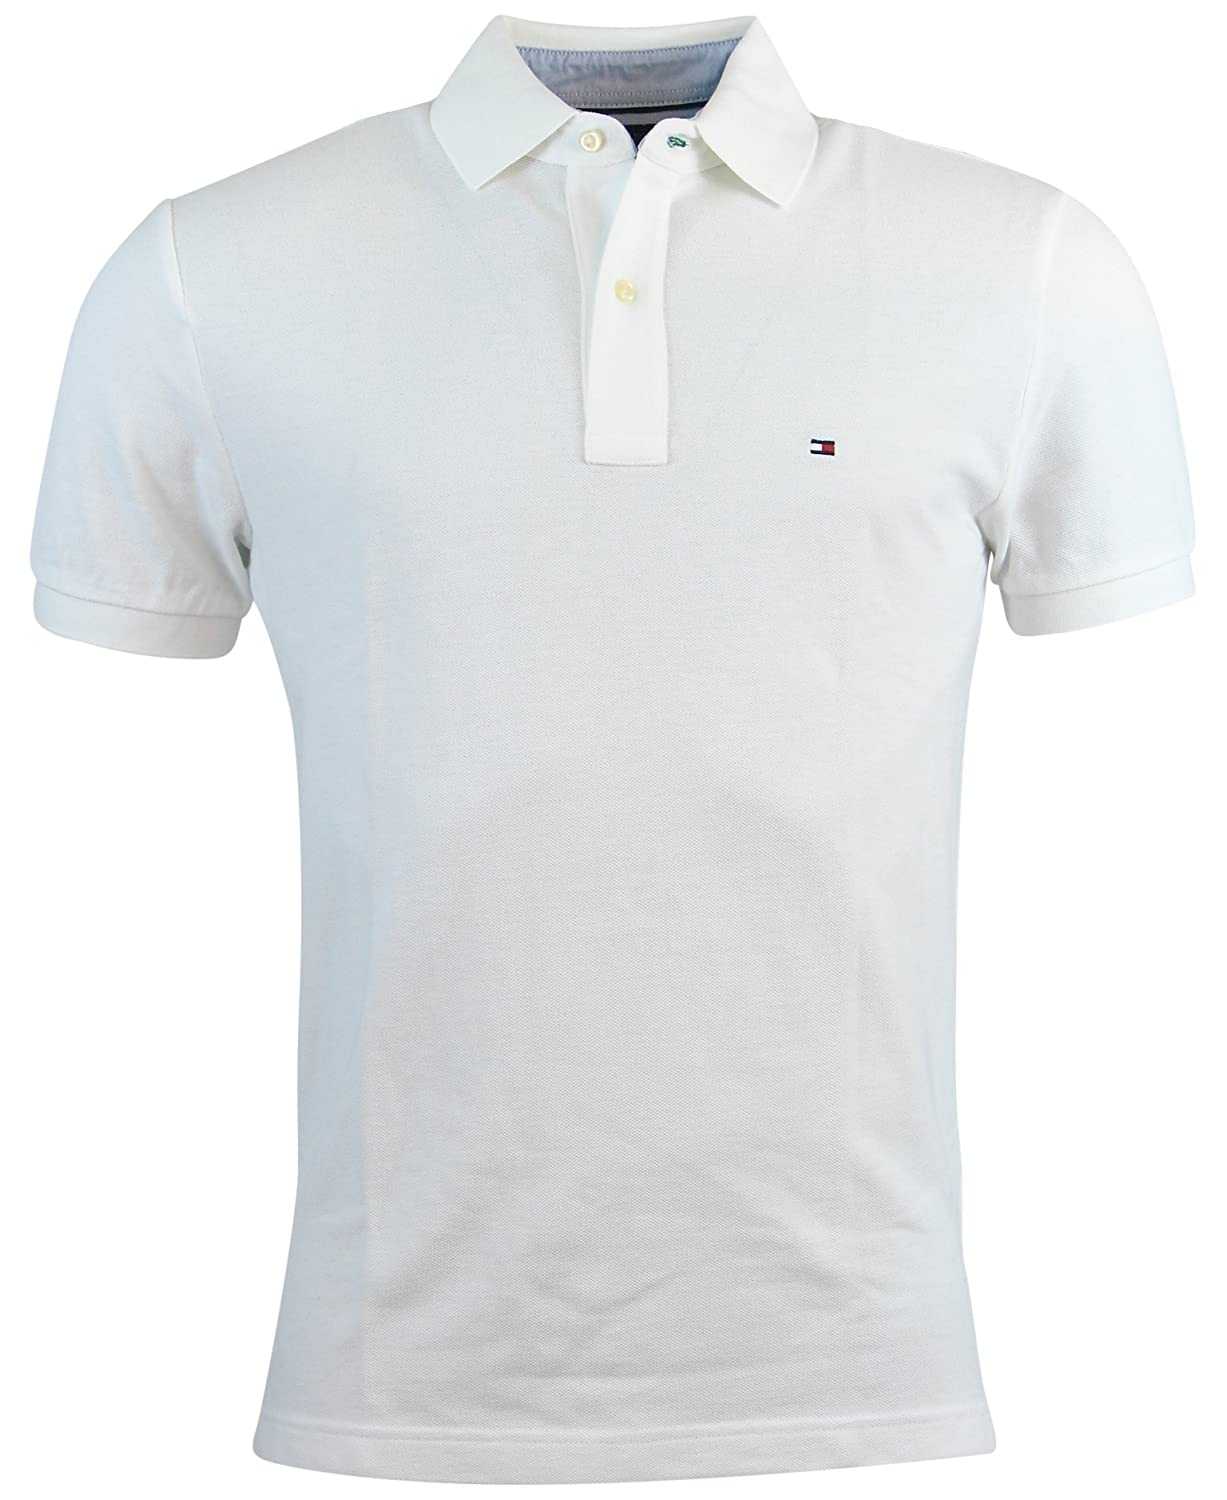 Tommy Hilfiger Mens Custom Fit Solid Color Polo Shirt At Amazon